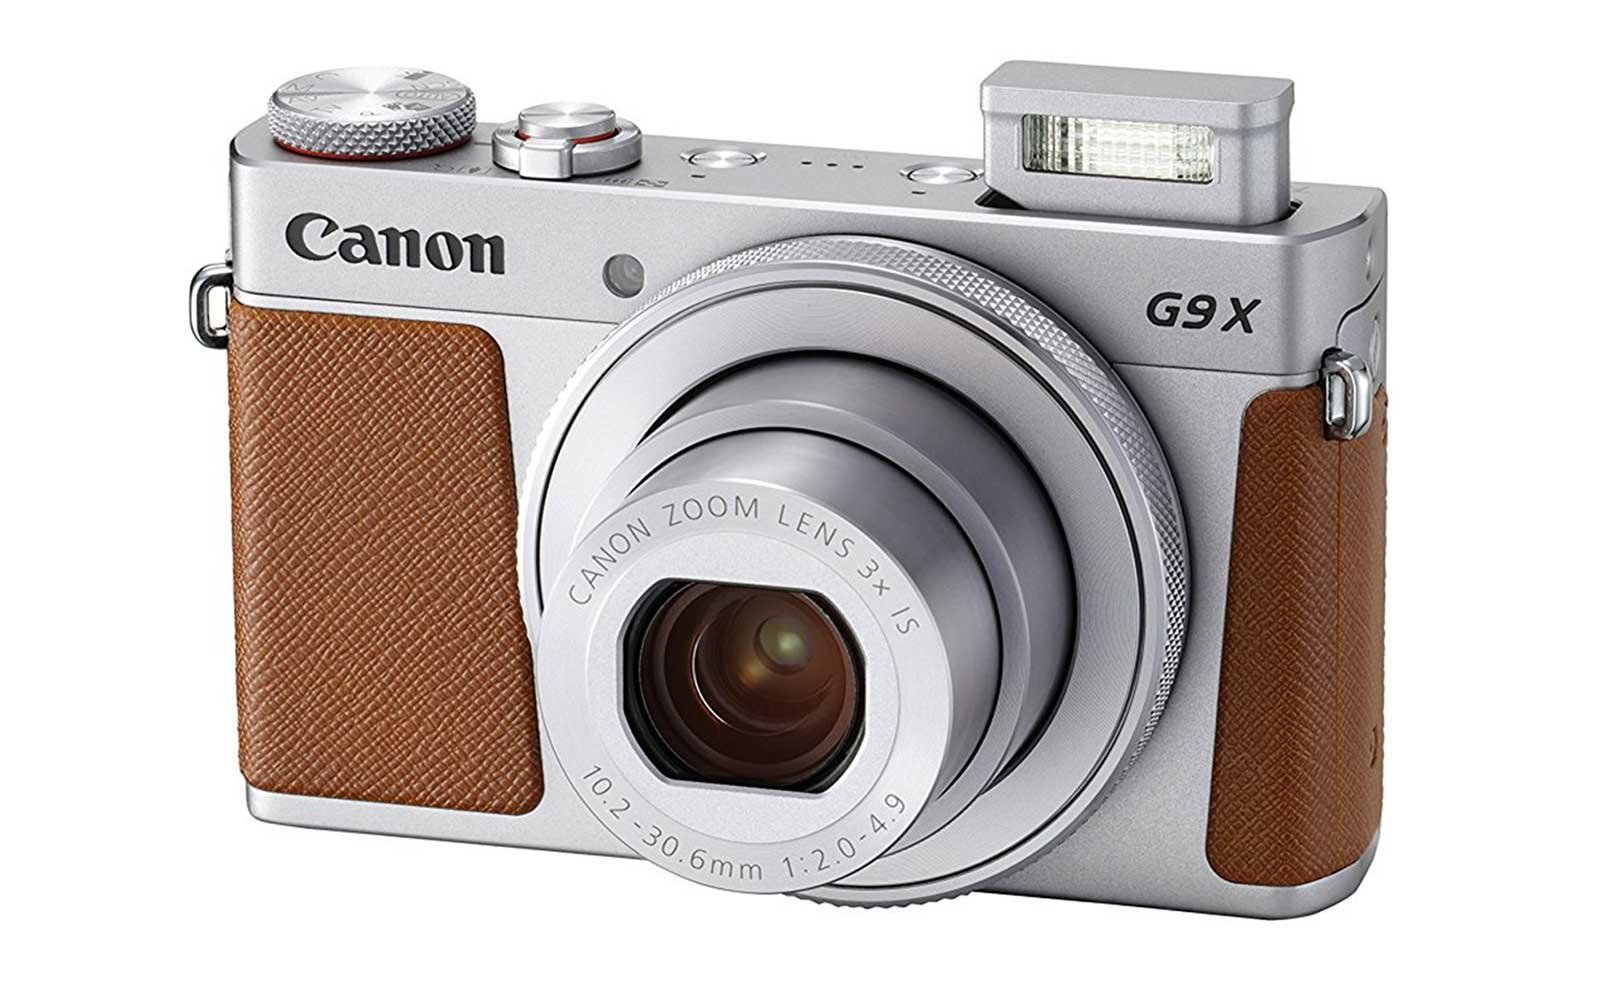 Canon Power Shot G9 Compact Camera